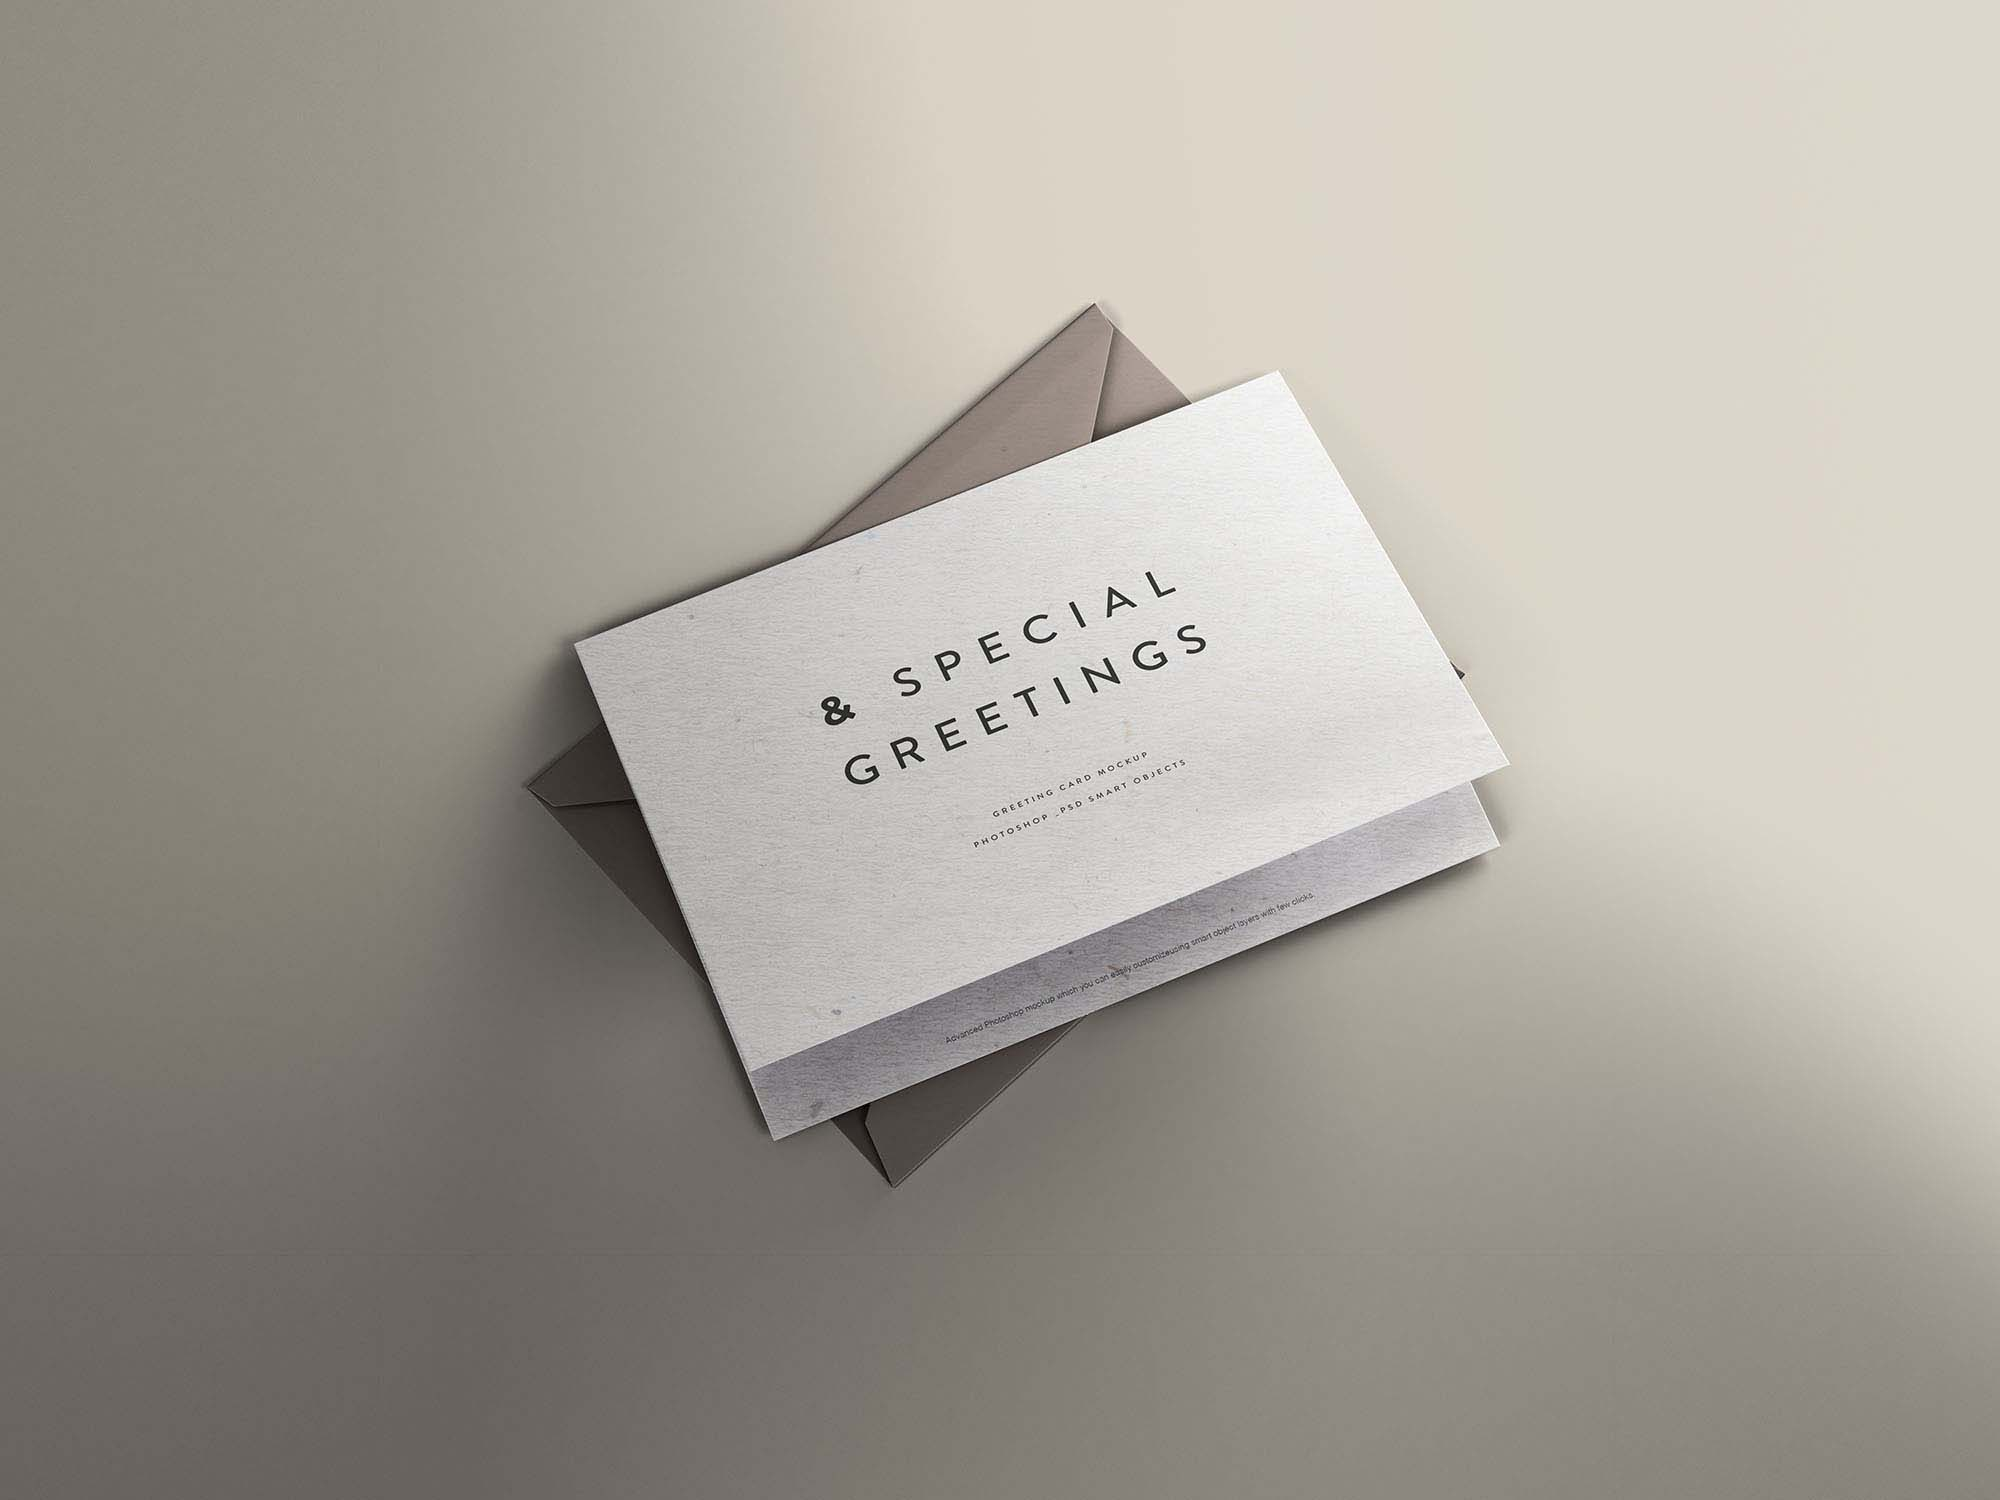 Free Greeting Card Mockup With Envelope PSD